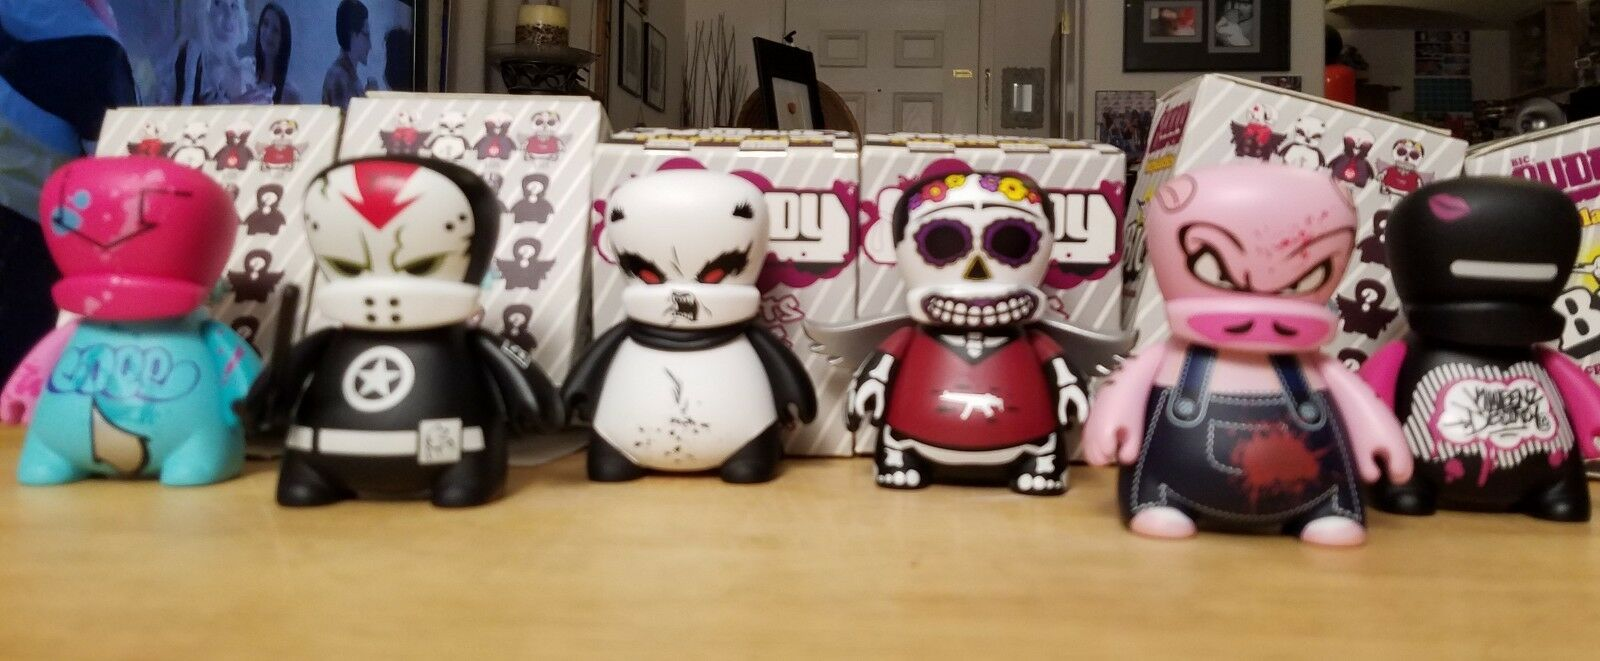 6 Bic Buddy Vinyl Figures Kano Sket Woebots Periwinkle Indie84 Cope2. Dunny Rare